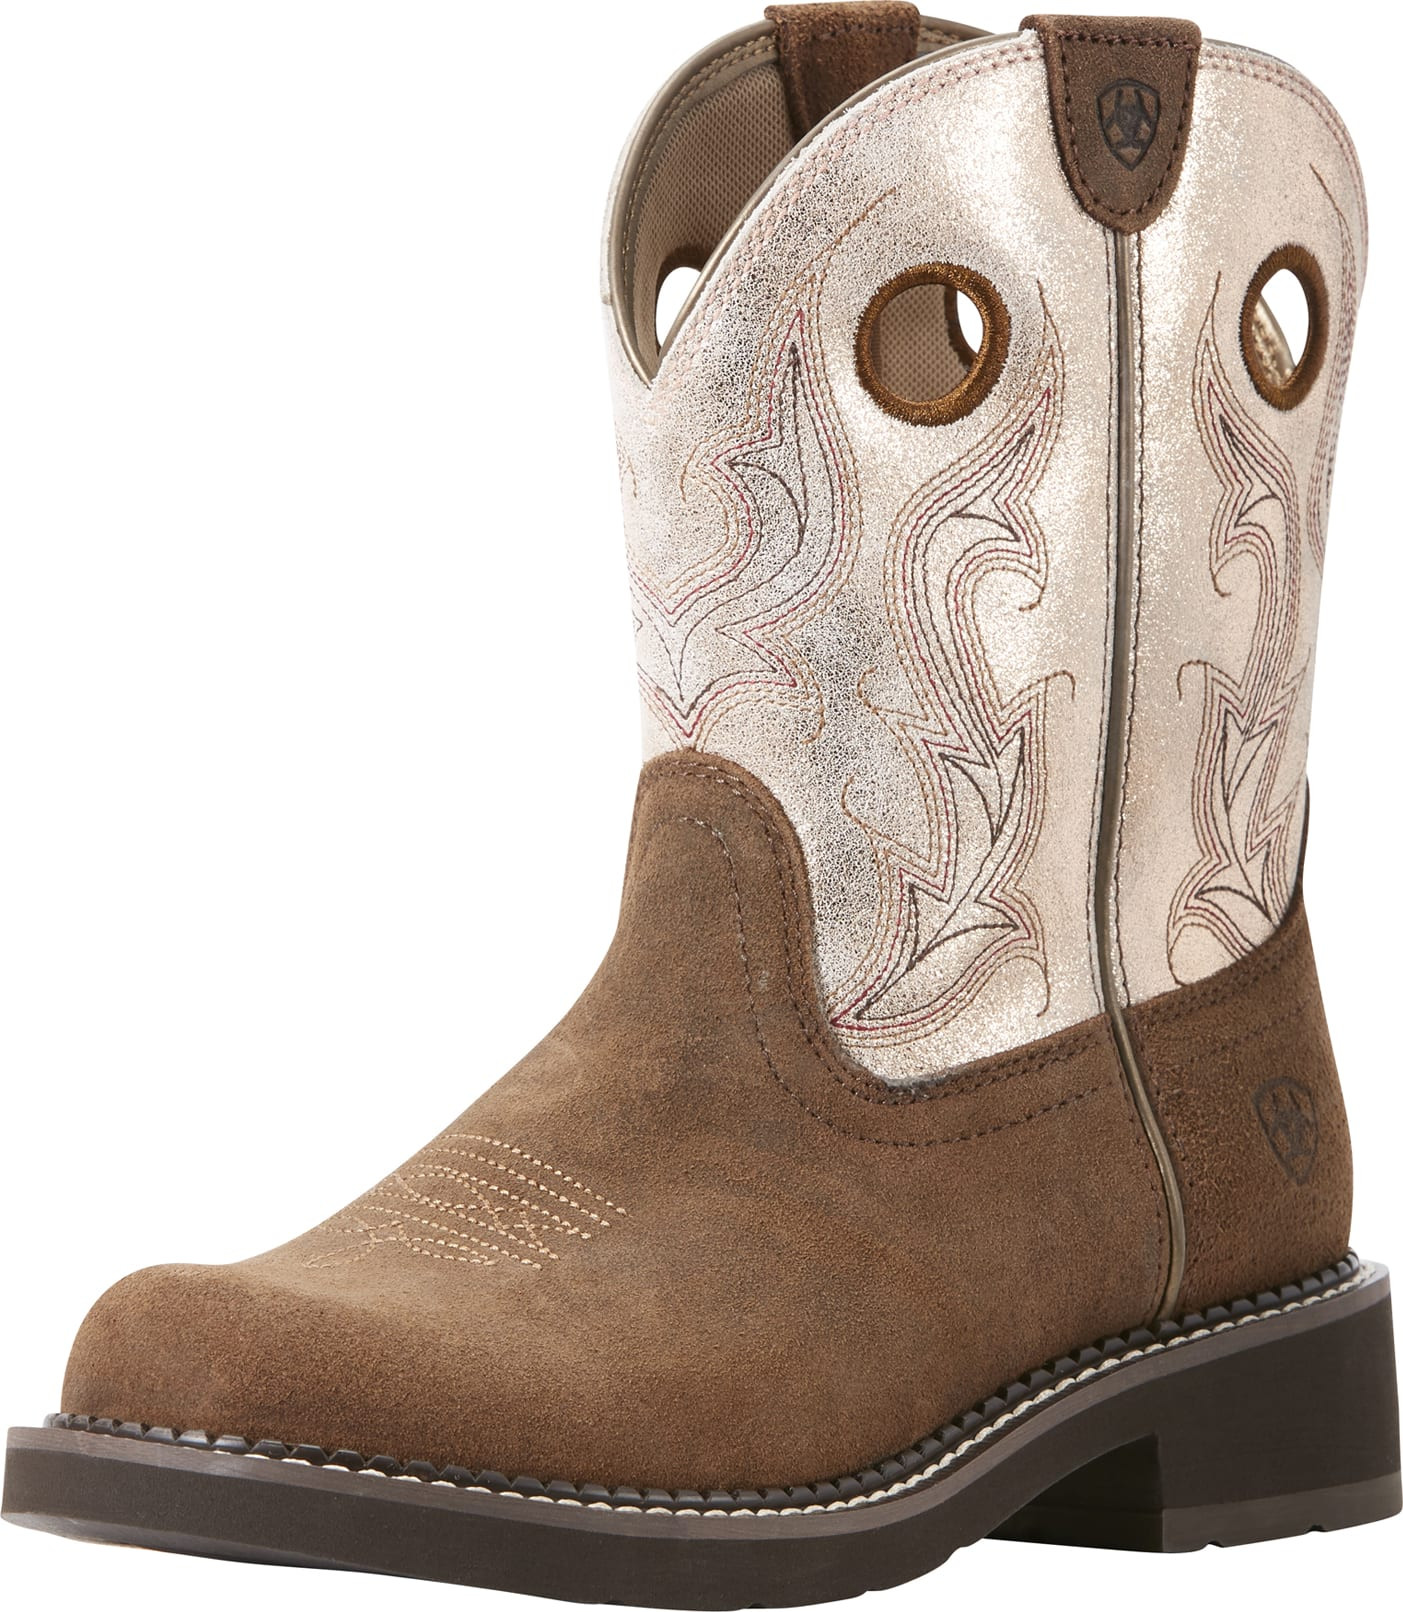 Ariat Fatbaby Rose Gold